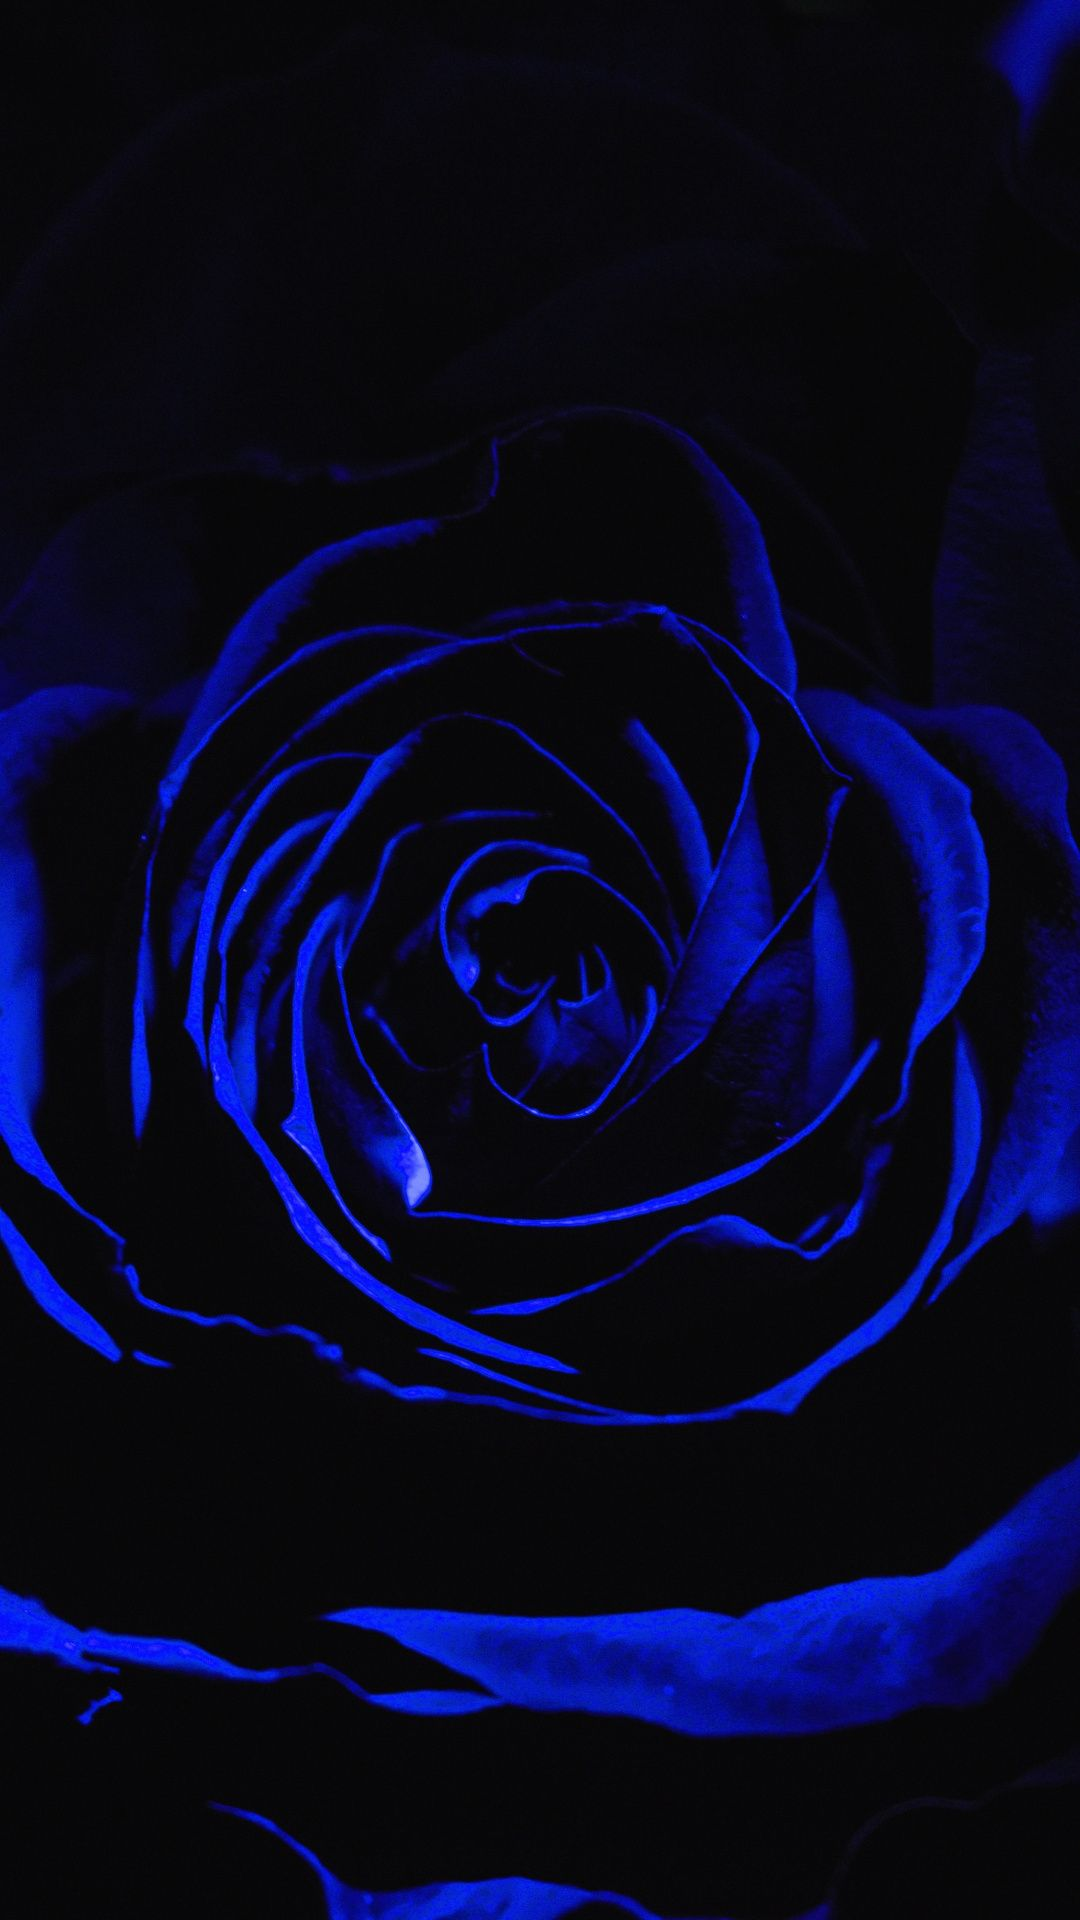 Rose, Blue, Black, Flower Wallpaper for Android [Full HD], 1080x1920 Flowers Background and Image